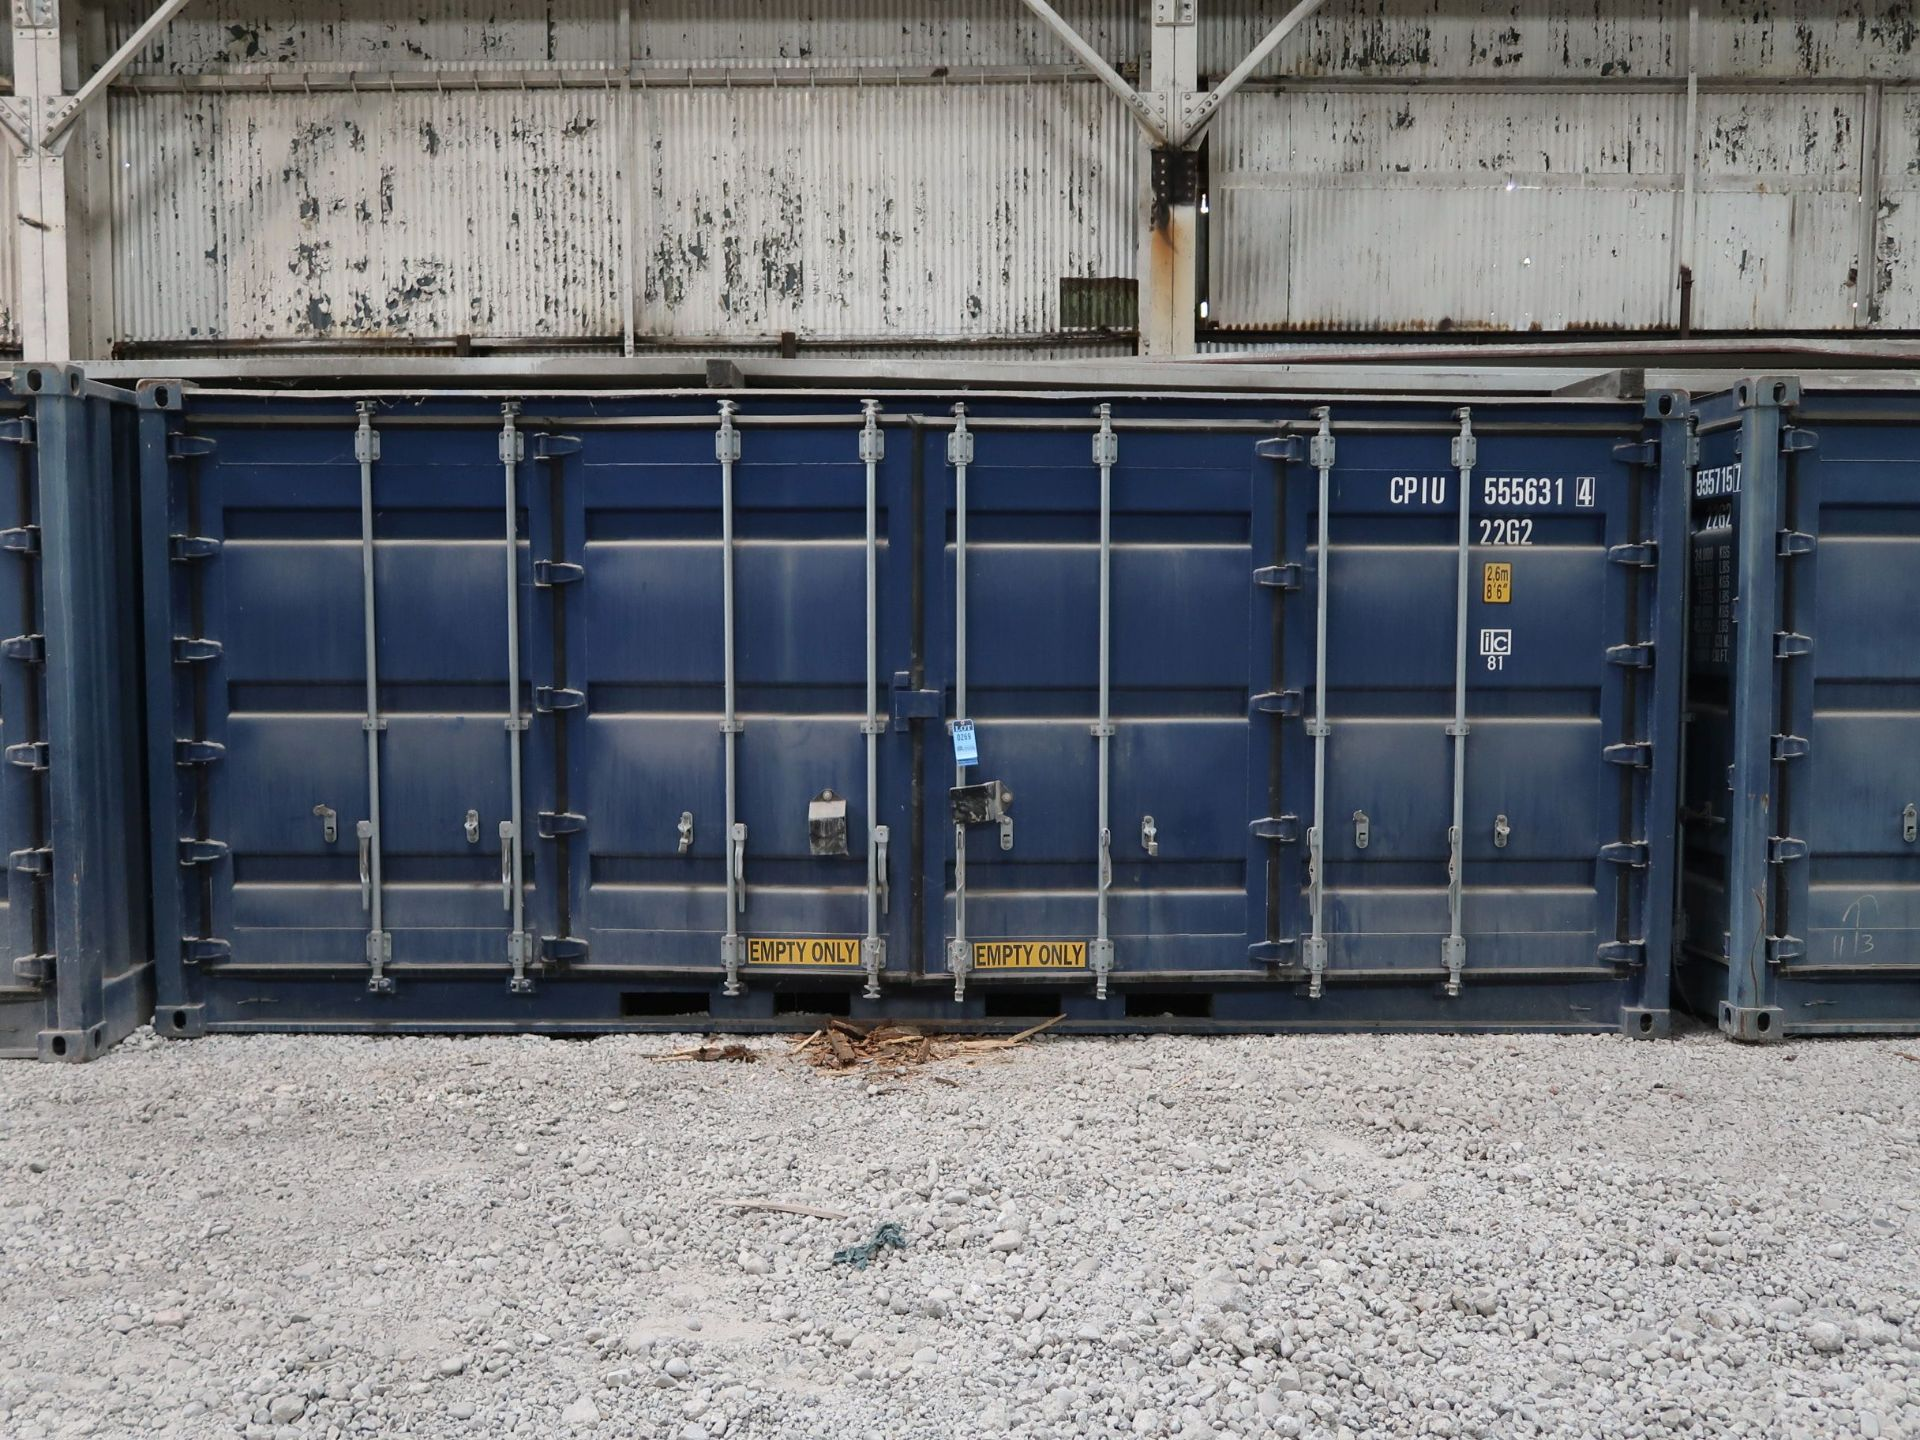 Lot 269 - 8' X 20' CONTIANER PROVIDERS INTERNATIONAL CONEX CONTAINER, SIDE AND END DOORS; NO. 555636 (NEW